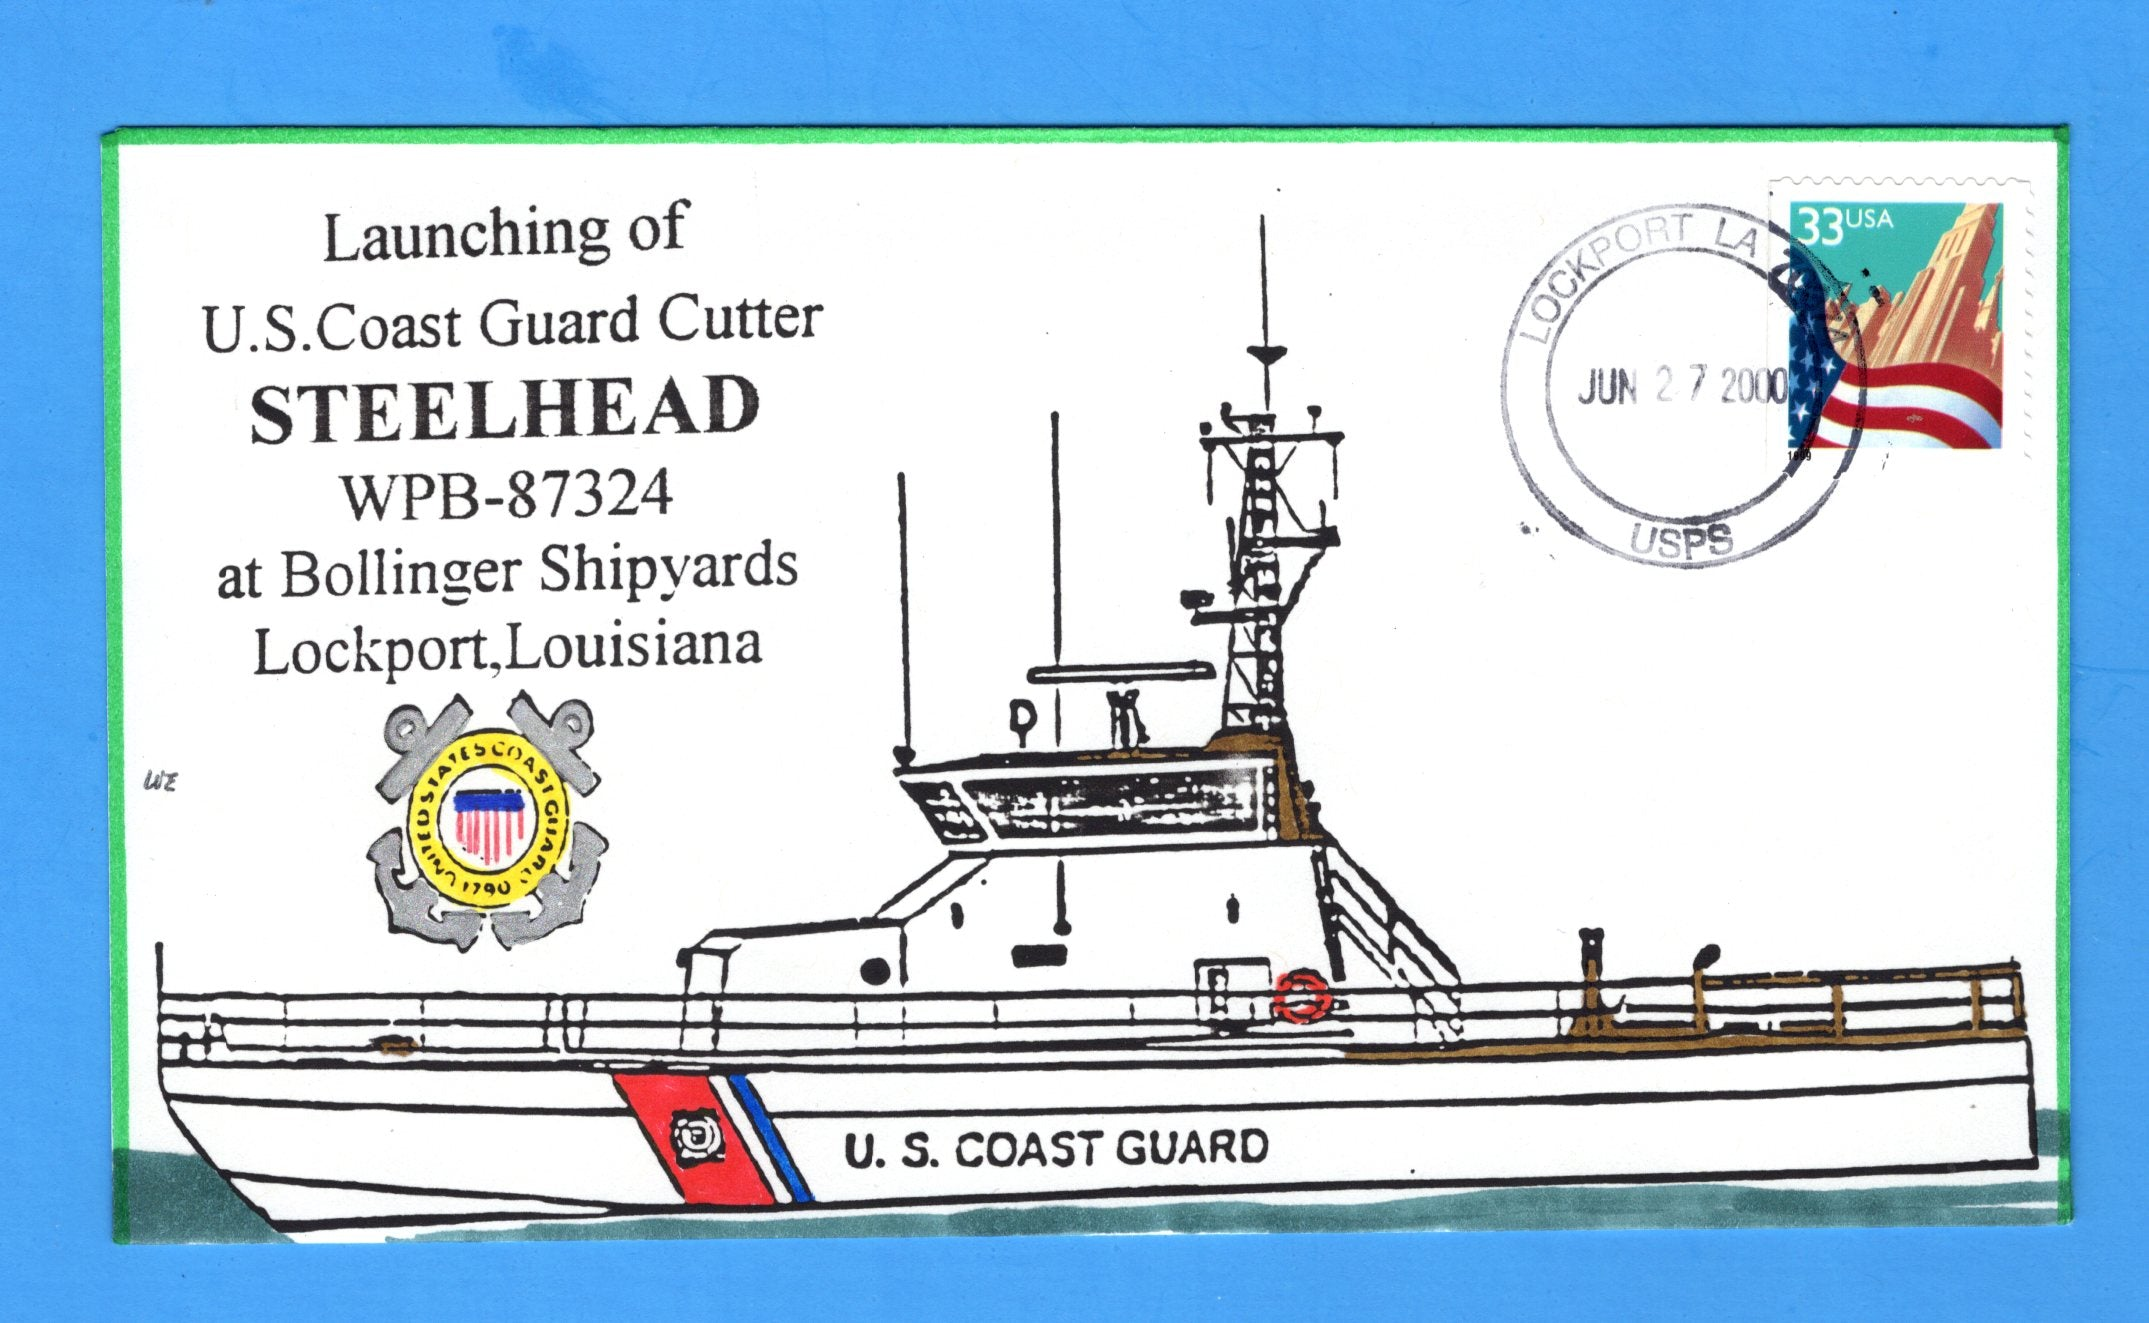 USCGC Steelhead WPB-87324 Launched June 27, 2000 - Hand Drawn and Colored Cachet by Bill Everett